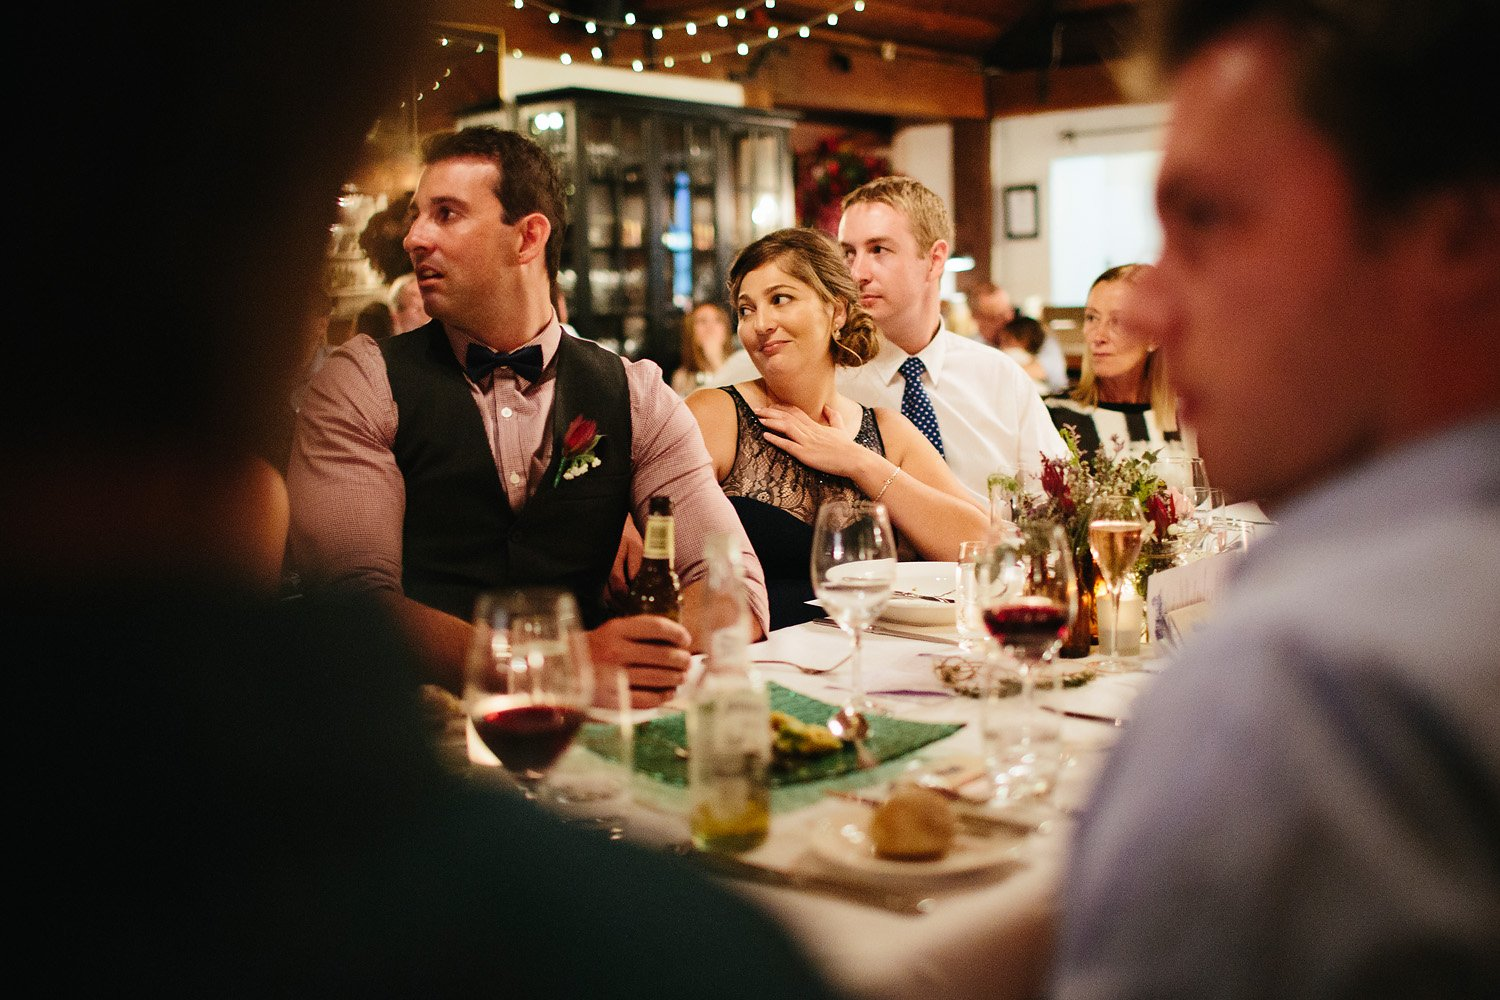 Guest getting emotional at wedding